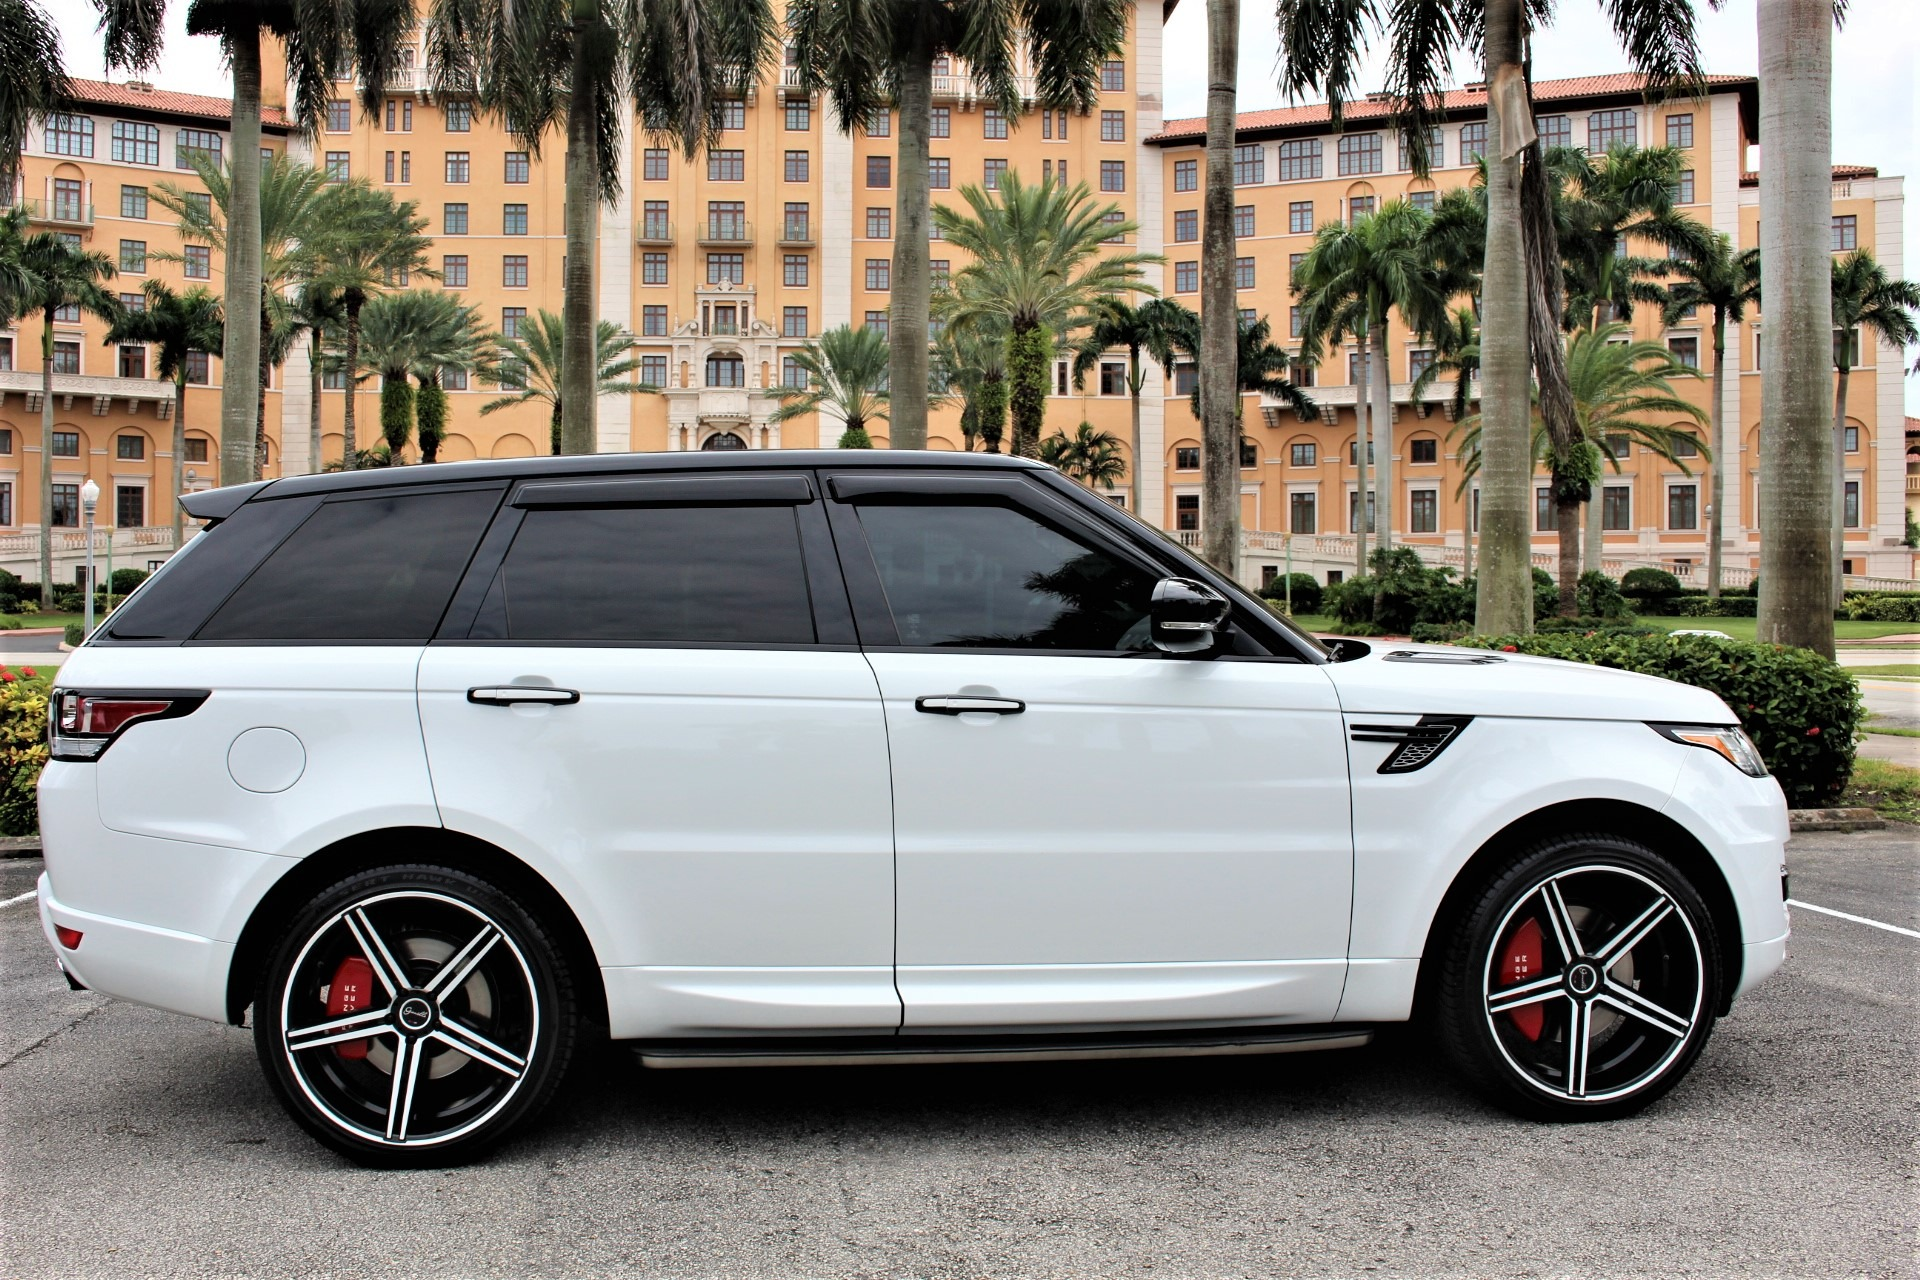 Used 2015 Land Rover Range Rover Sport HSE for sale $58,850 at The Gables Sports Cars in Miami FL 33146 3